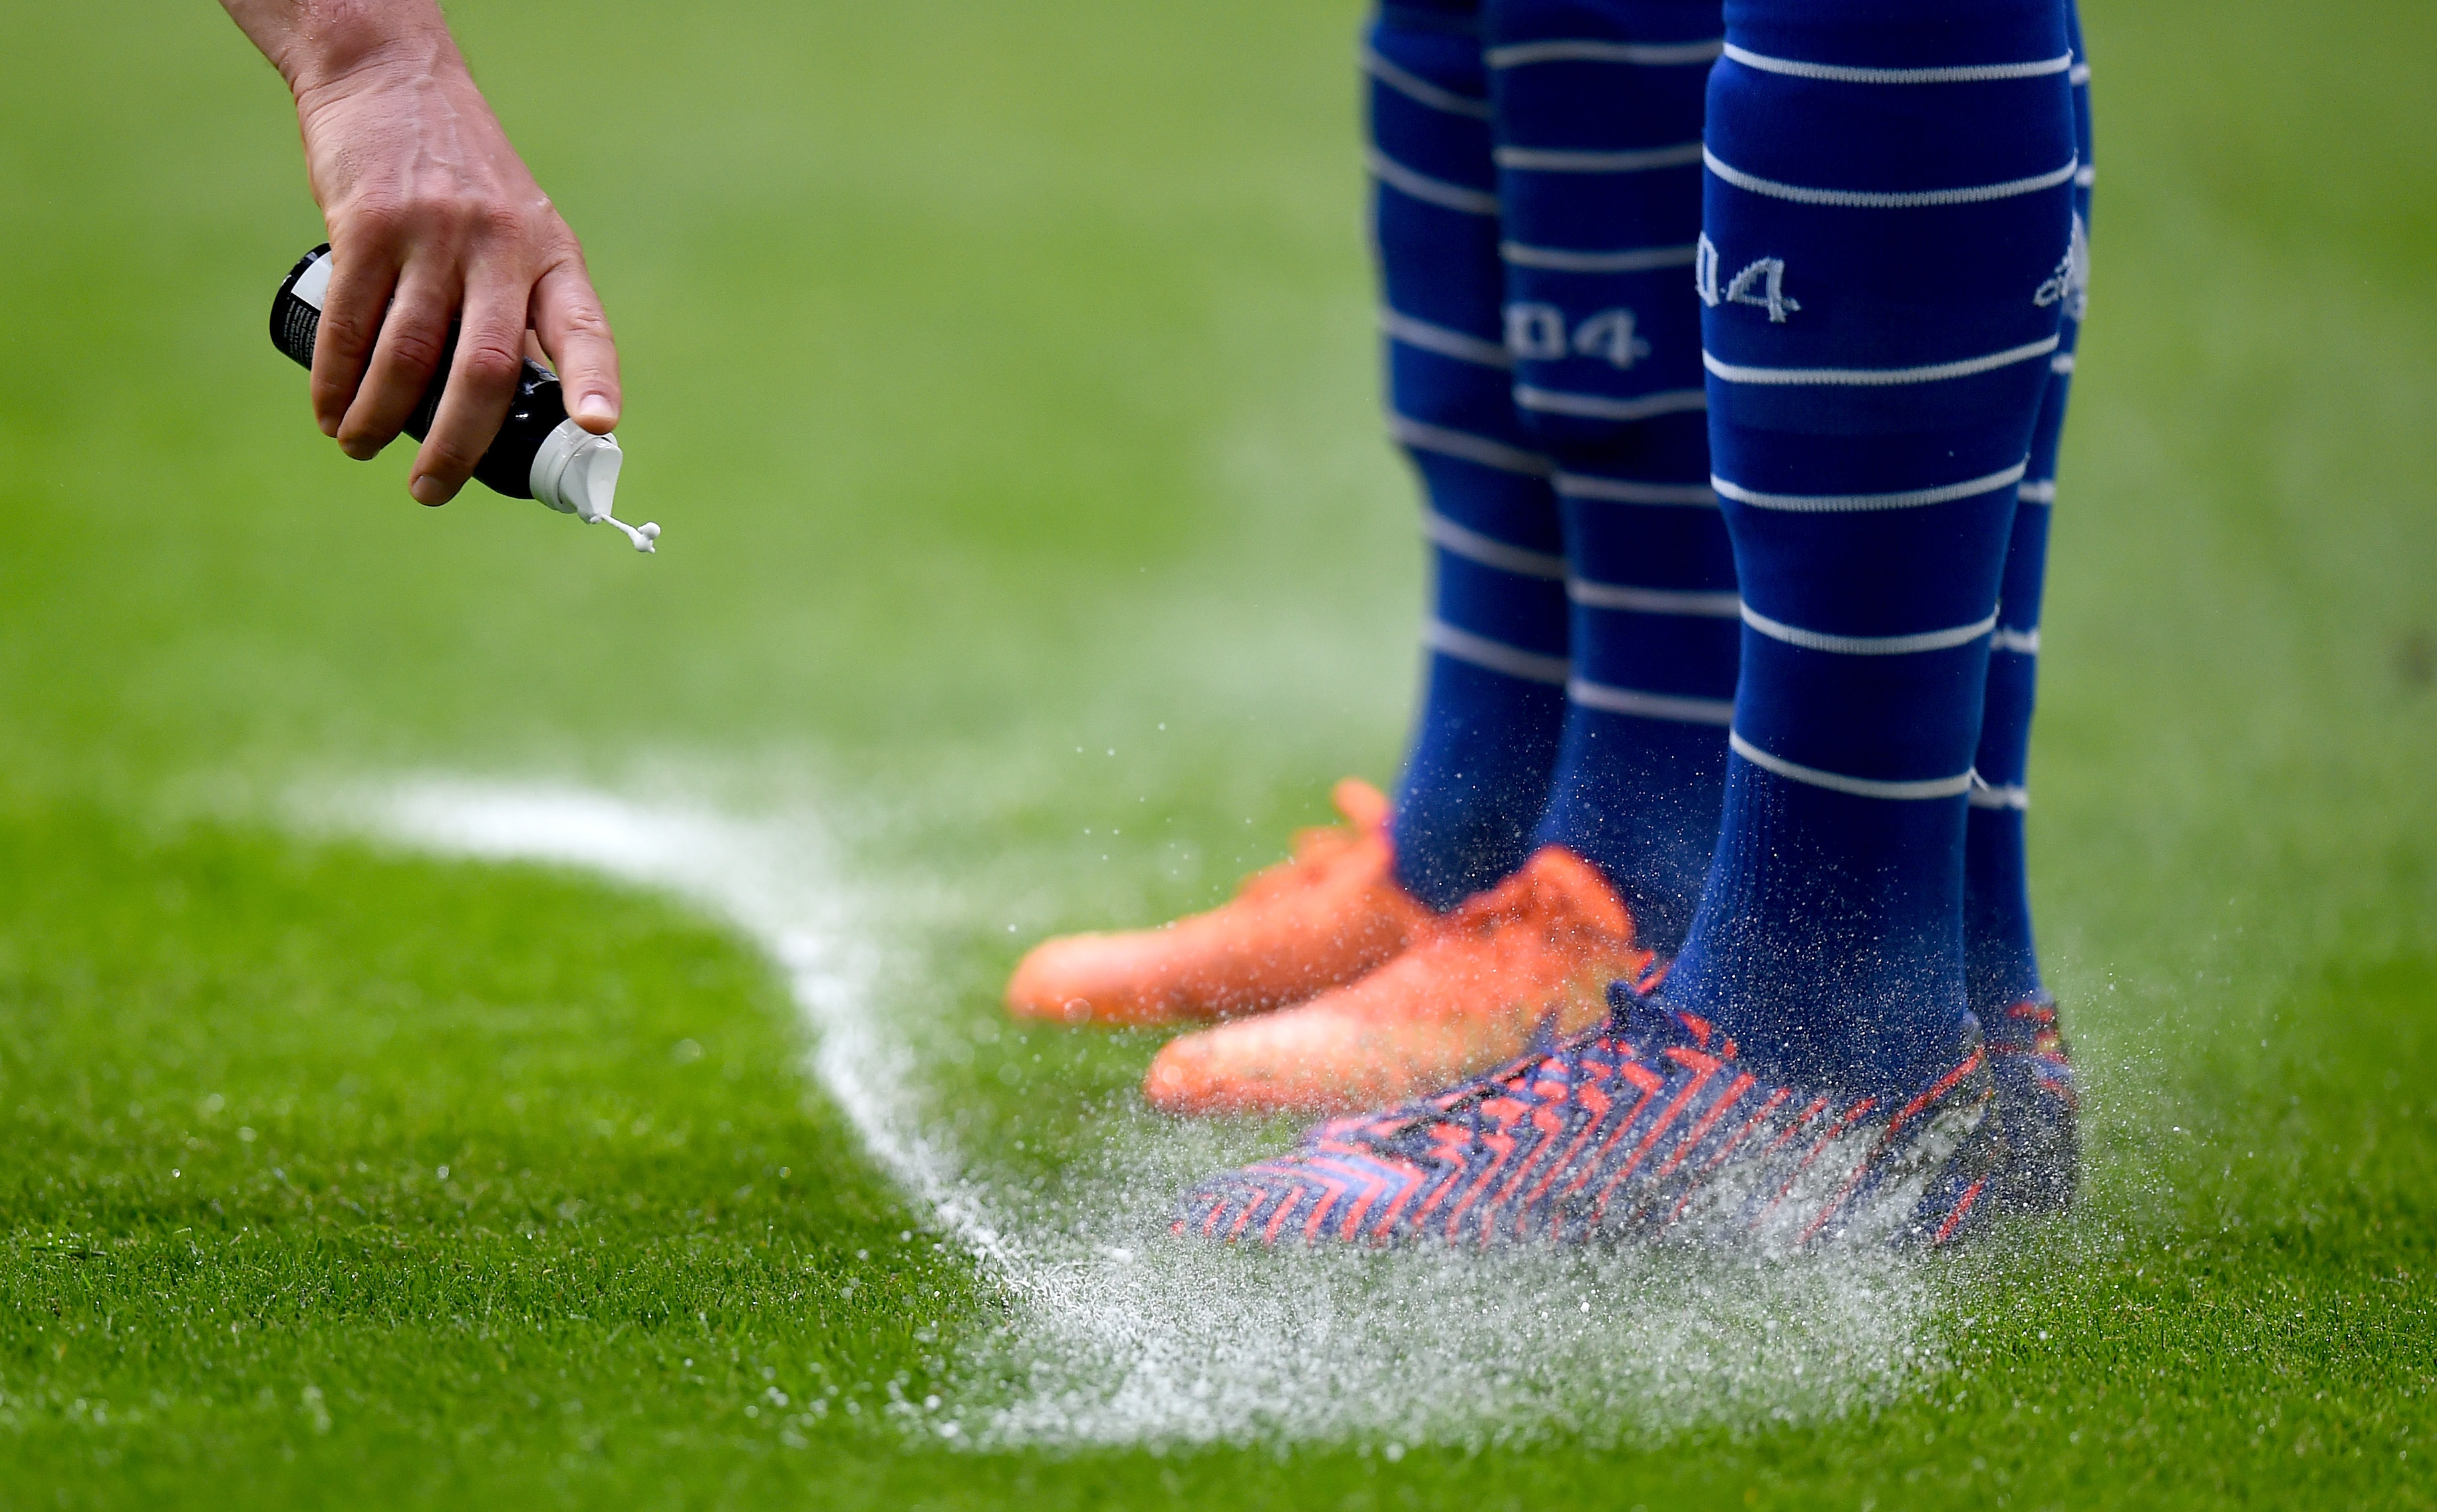 during the Bundesliga match between FC Schalke 04 and SC Paderborn at Veltins Arena on May 16, 2015 in Gelsenkirchen, Germany